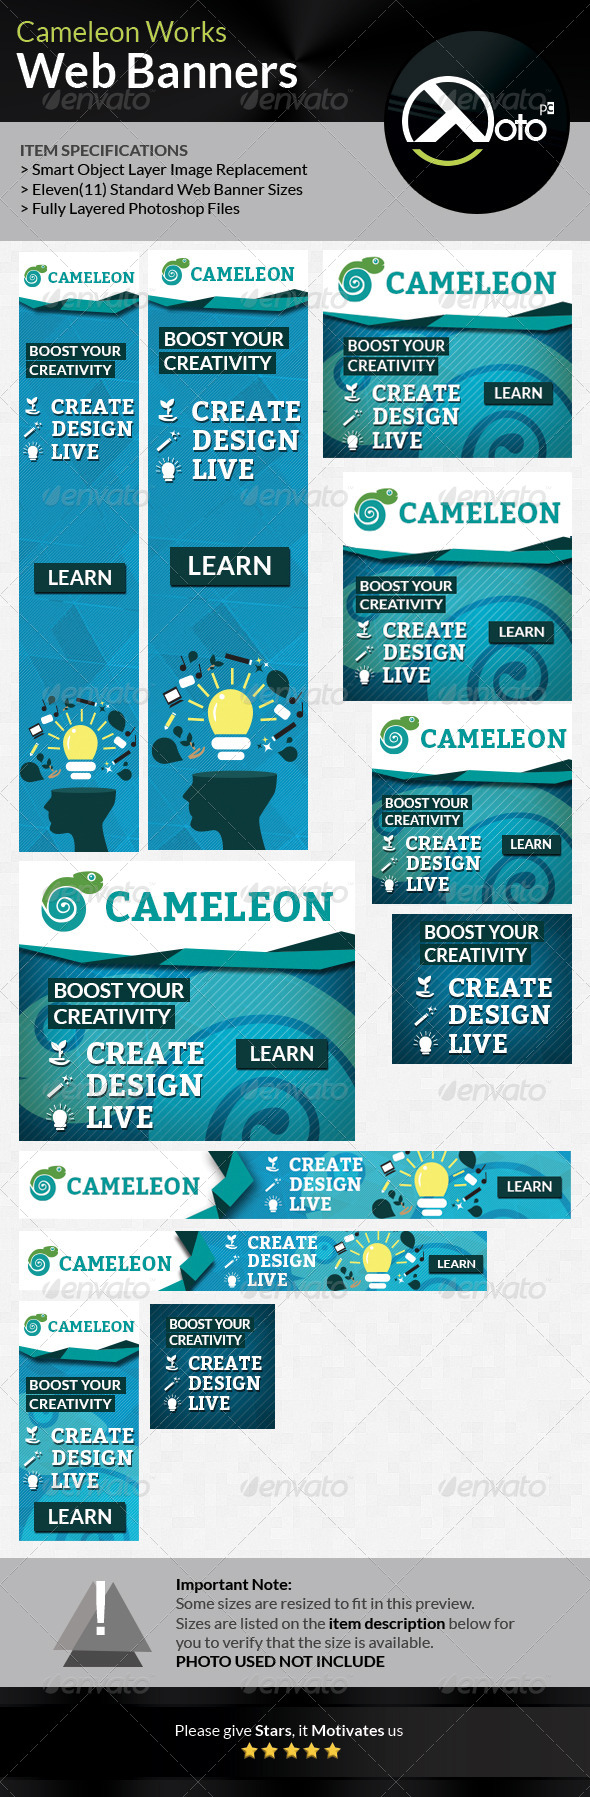 GraphicRiver Cameleon Works Web Banners 6668407